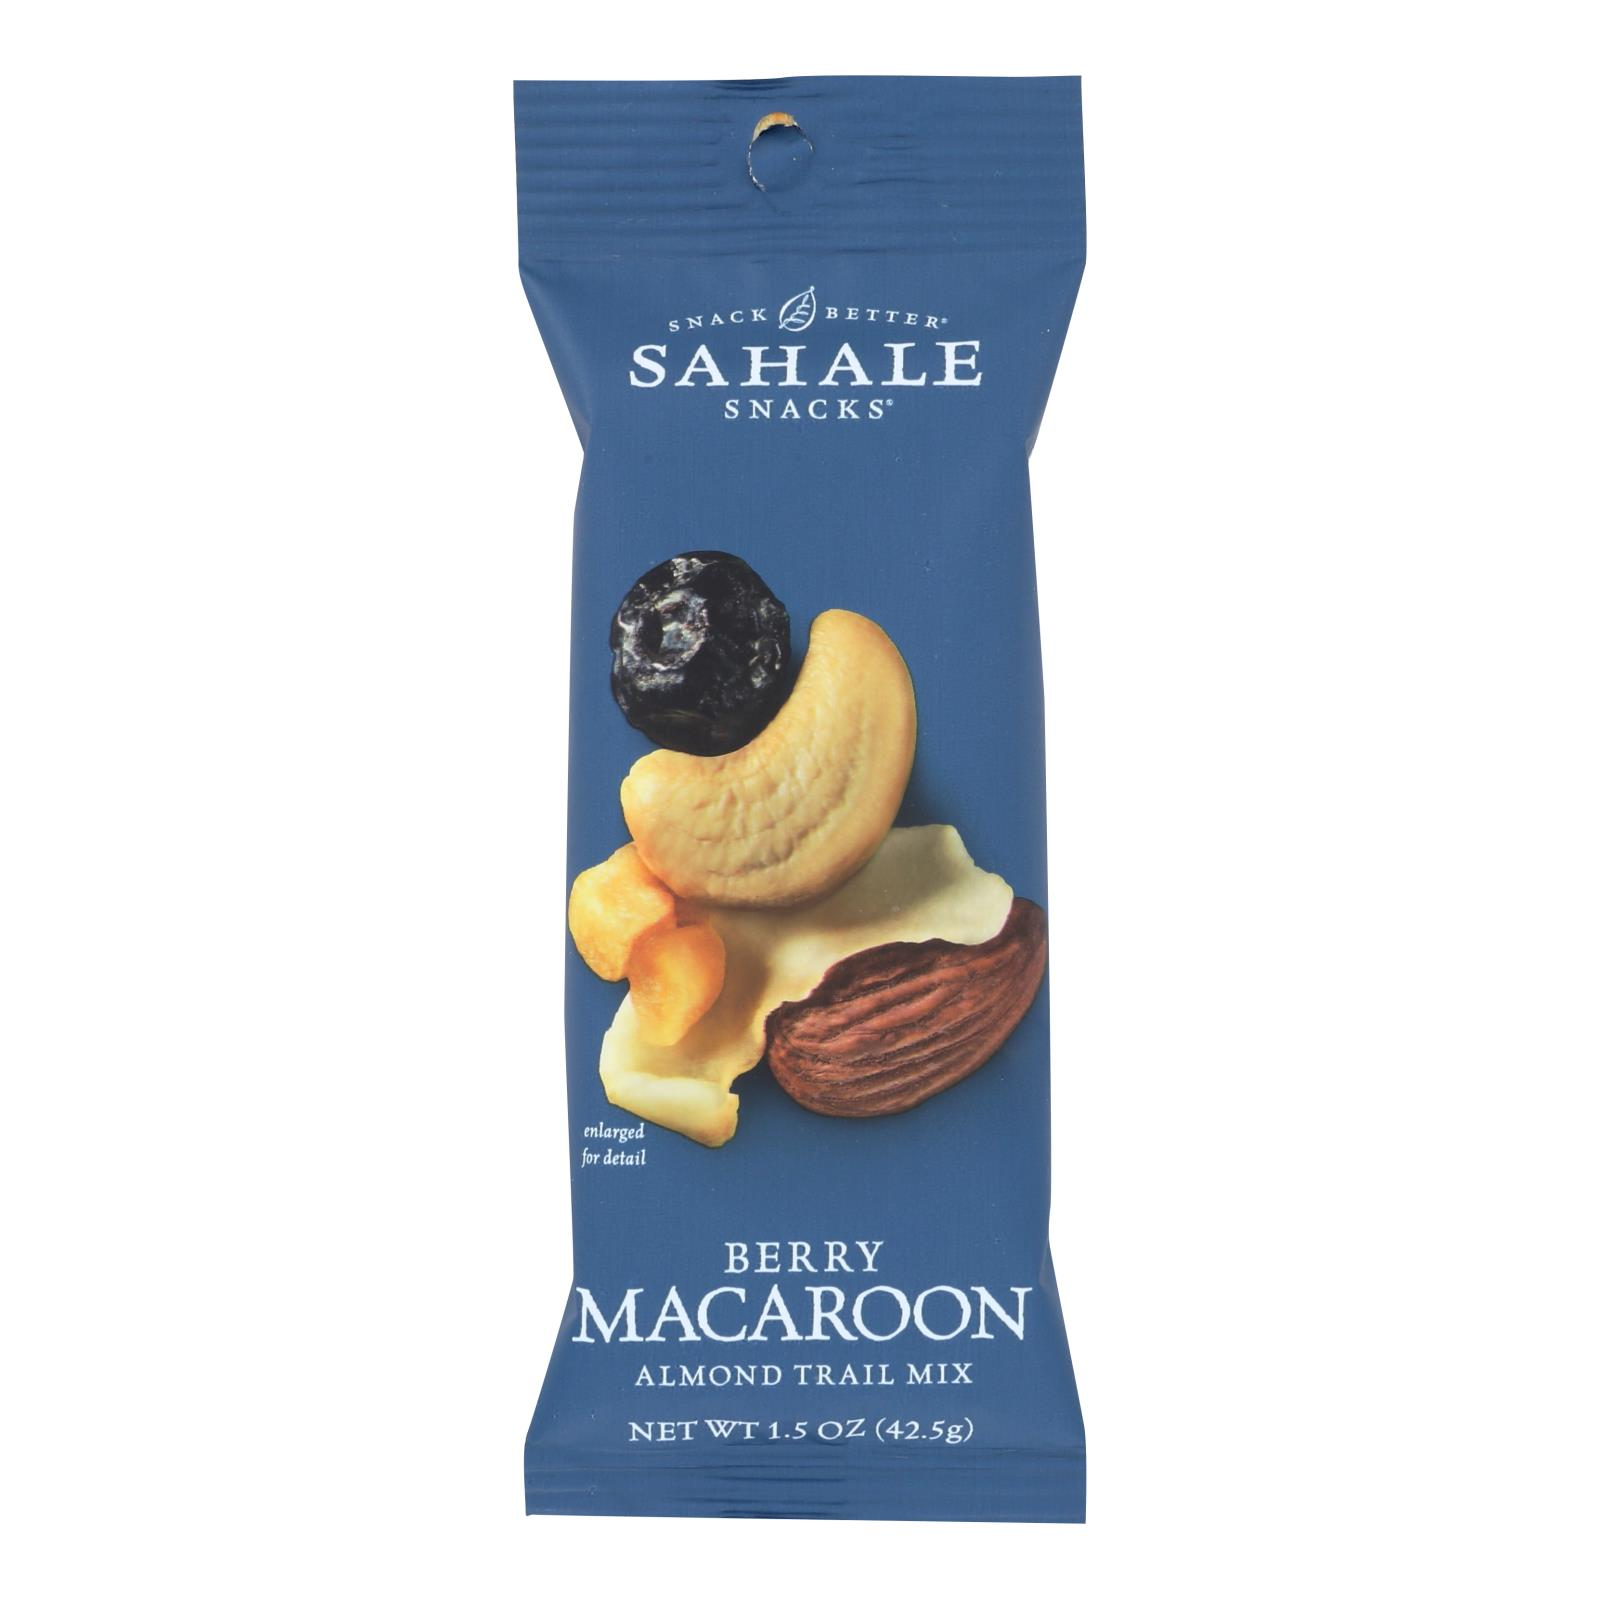 Sahale Berry Macaroon Almond Trail Mix  - Case of 9 - 1.5 OZ